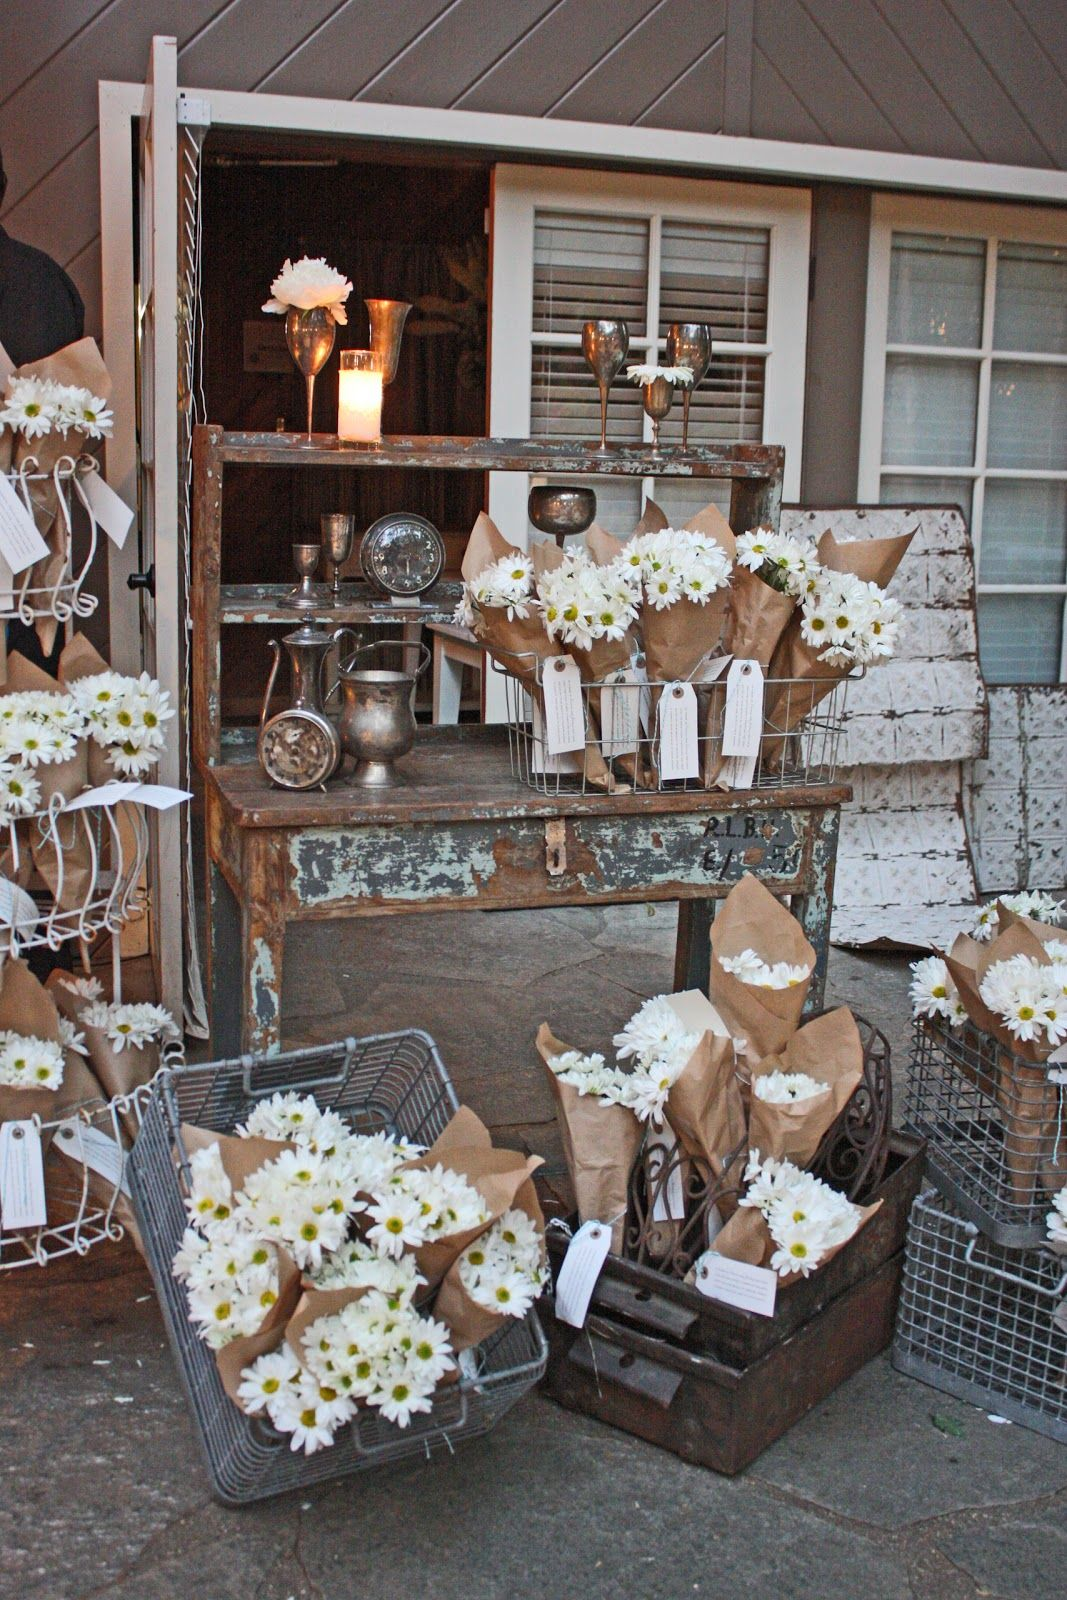 Vintage store displays thats me in the background putting the vintage store displays thats me in the background putting the finishing touches on our table junglespirit Choice Image